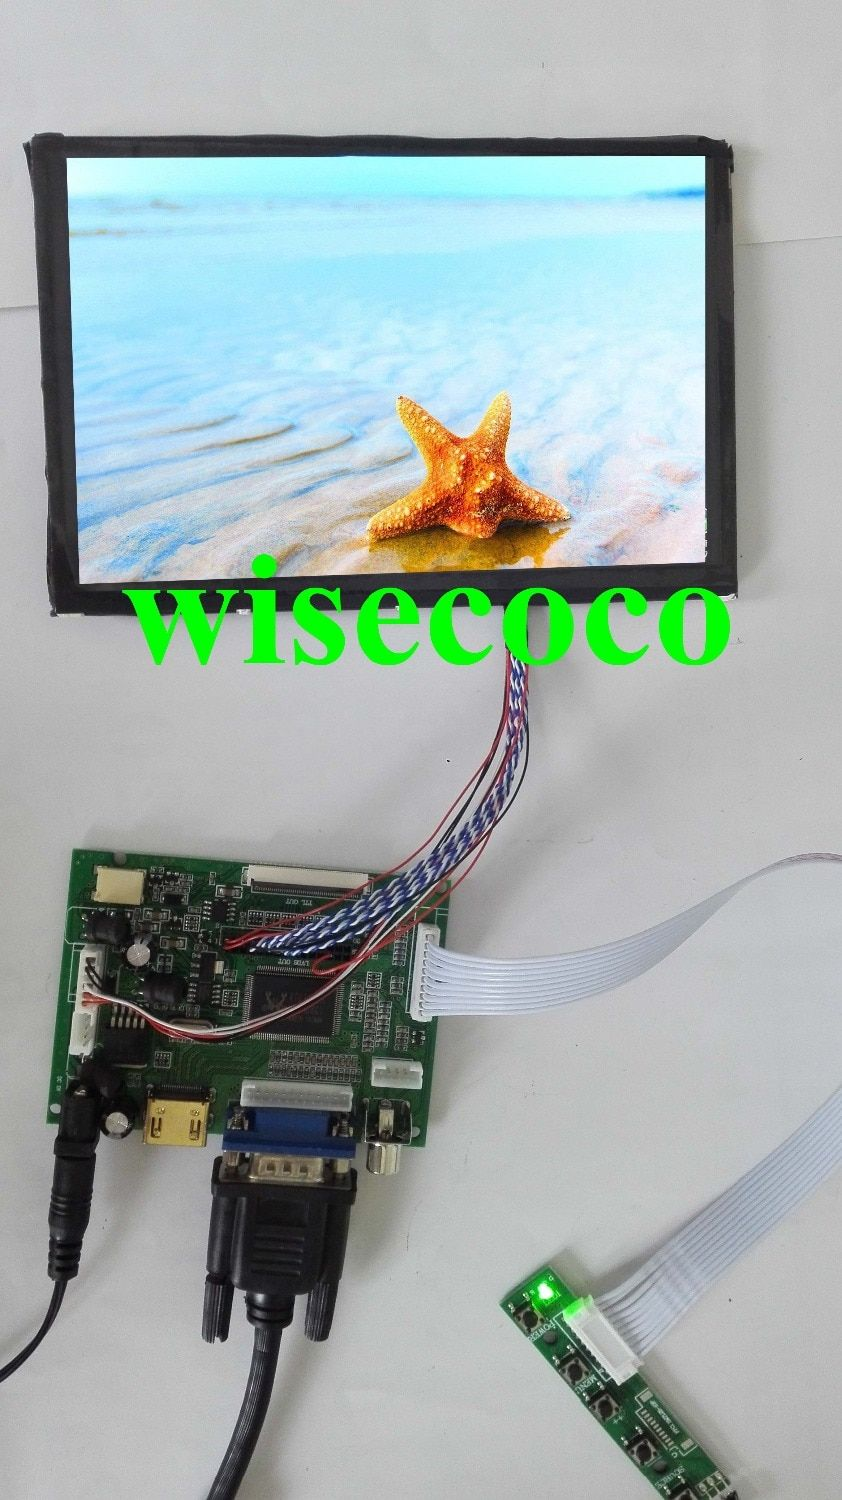 100%Tested NEW For Raspberry Pi 1280*800 N070ICG-LD1 IPS 7 inch LCD Screen Display Remote Driver Control Board 2AV HDMI VGA